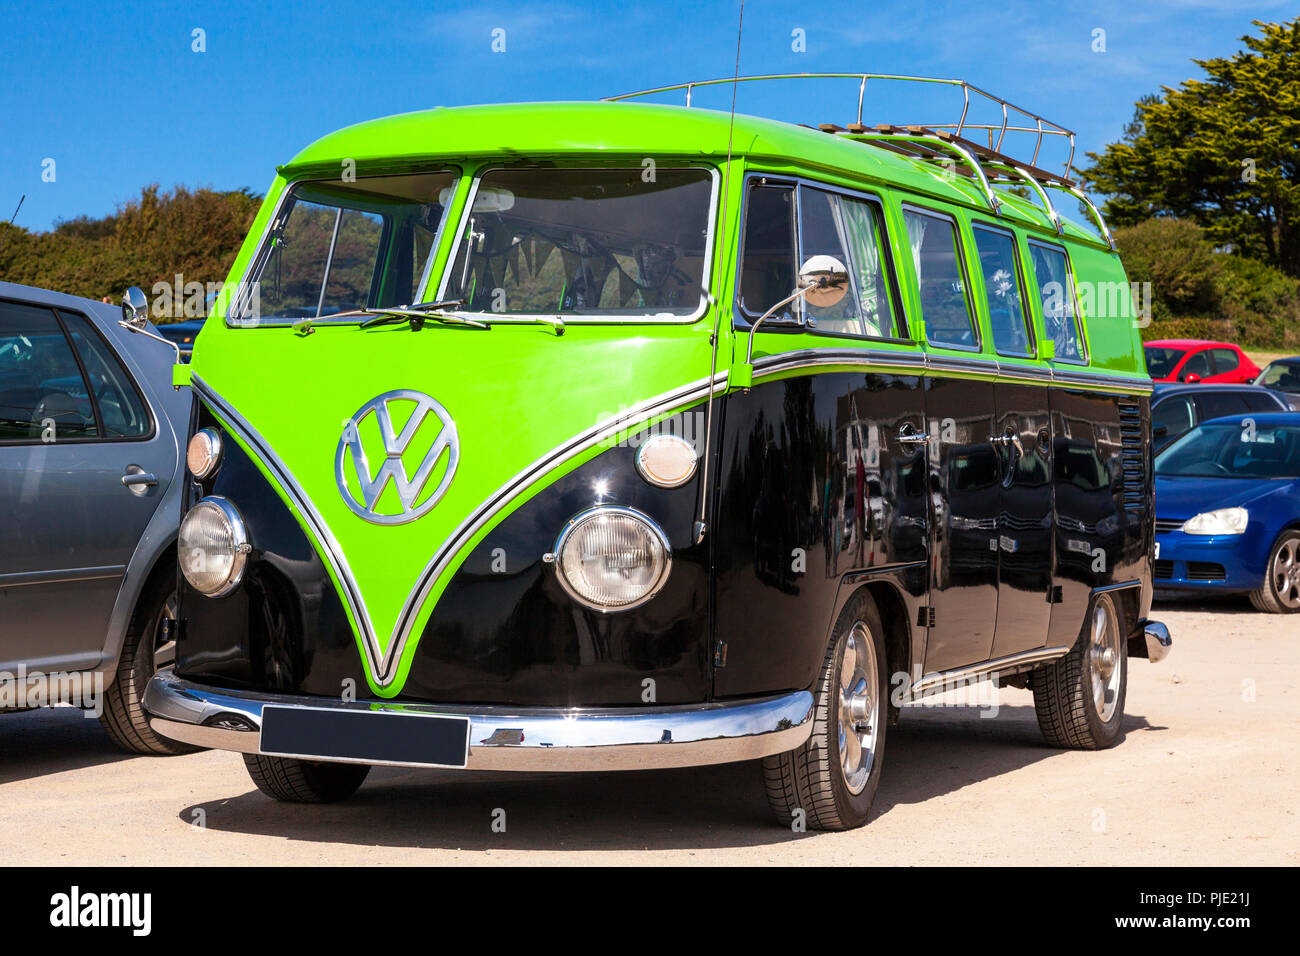 A classic 1964 split-screen VW bus at Daymer Bay, Cornwall, U.K. - Stock Image